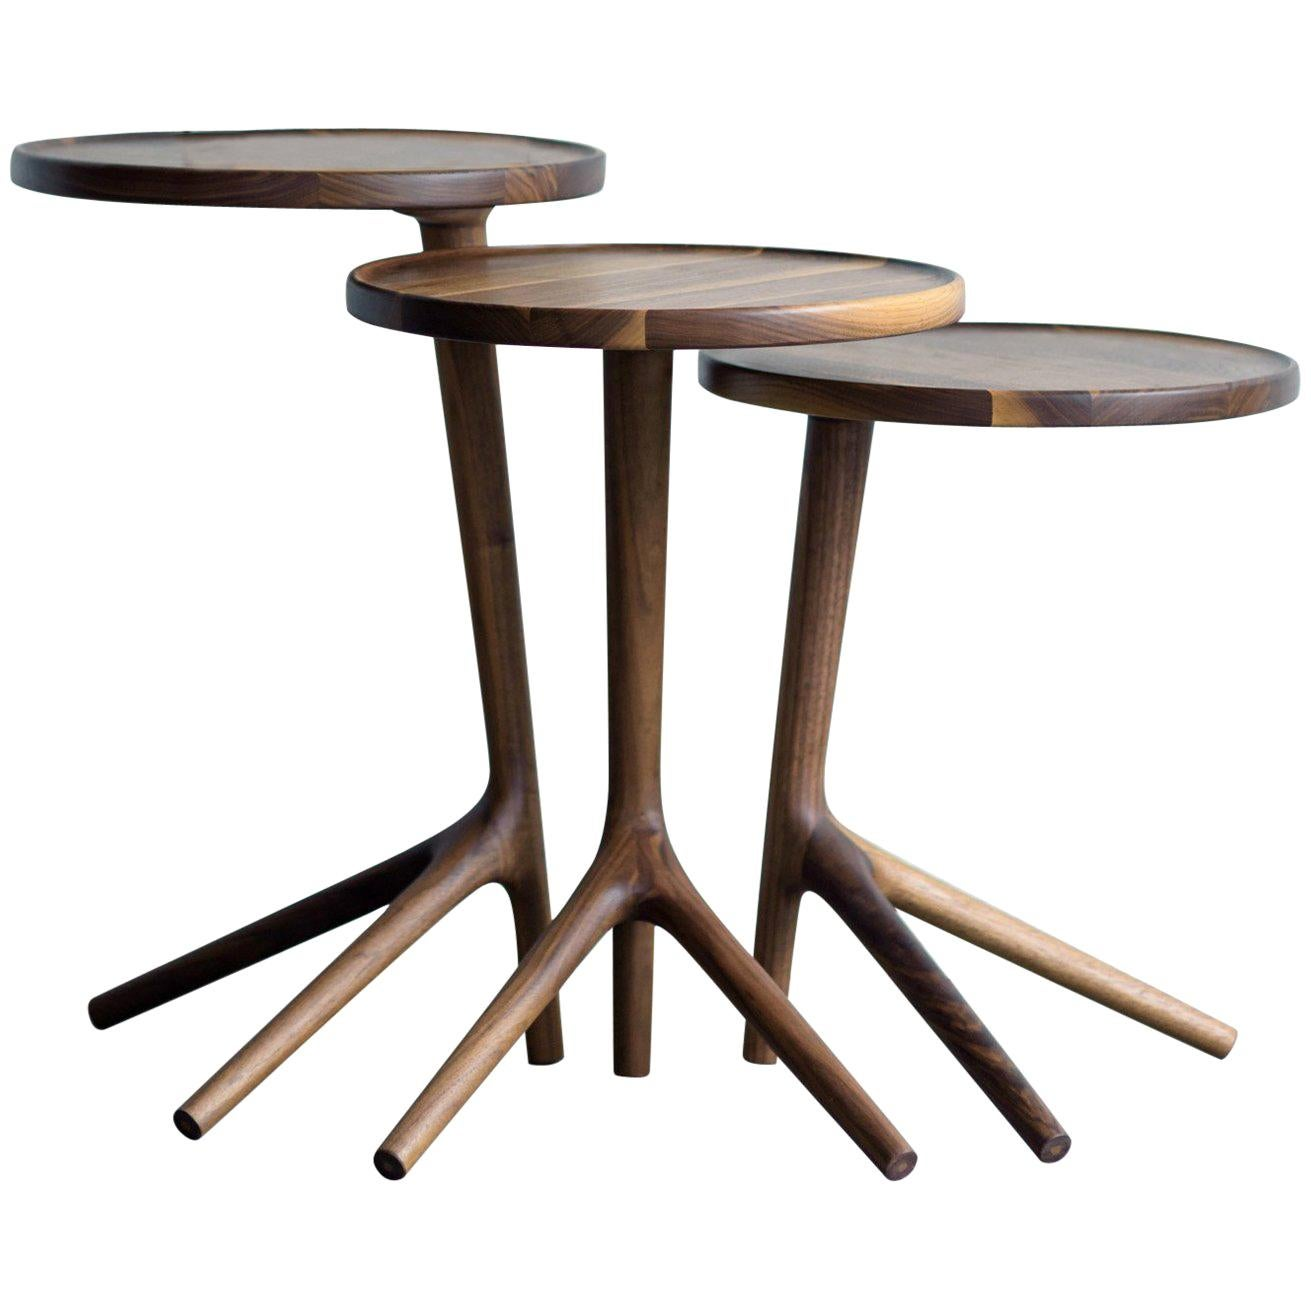 Walnut Accent Table, Designed and Handcrafted by Fernweh Woodworking